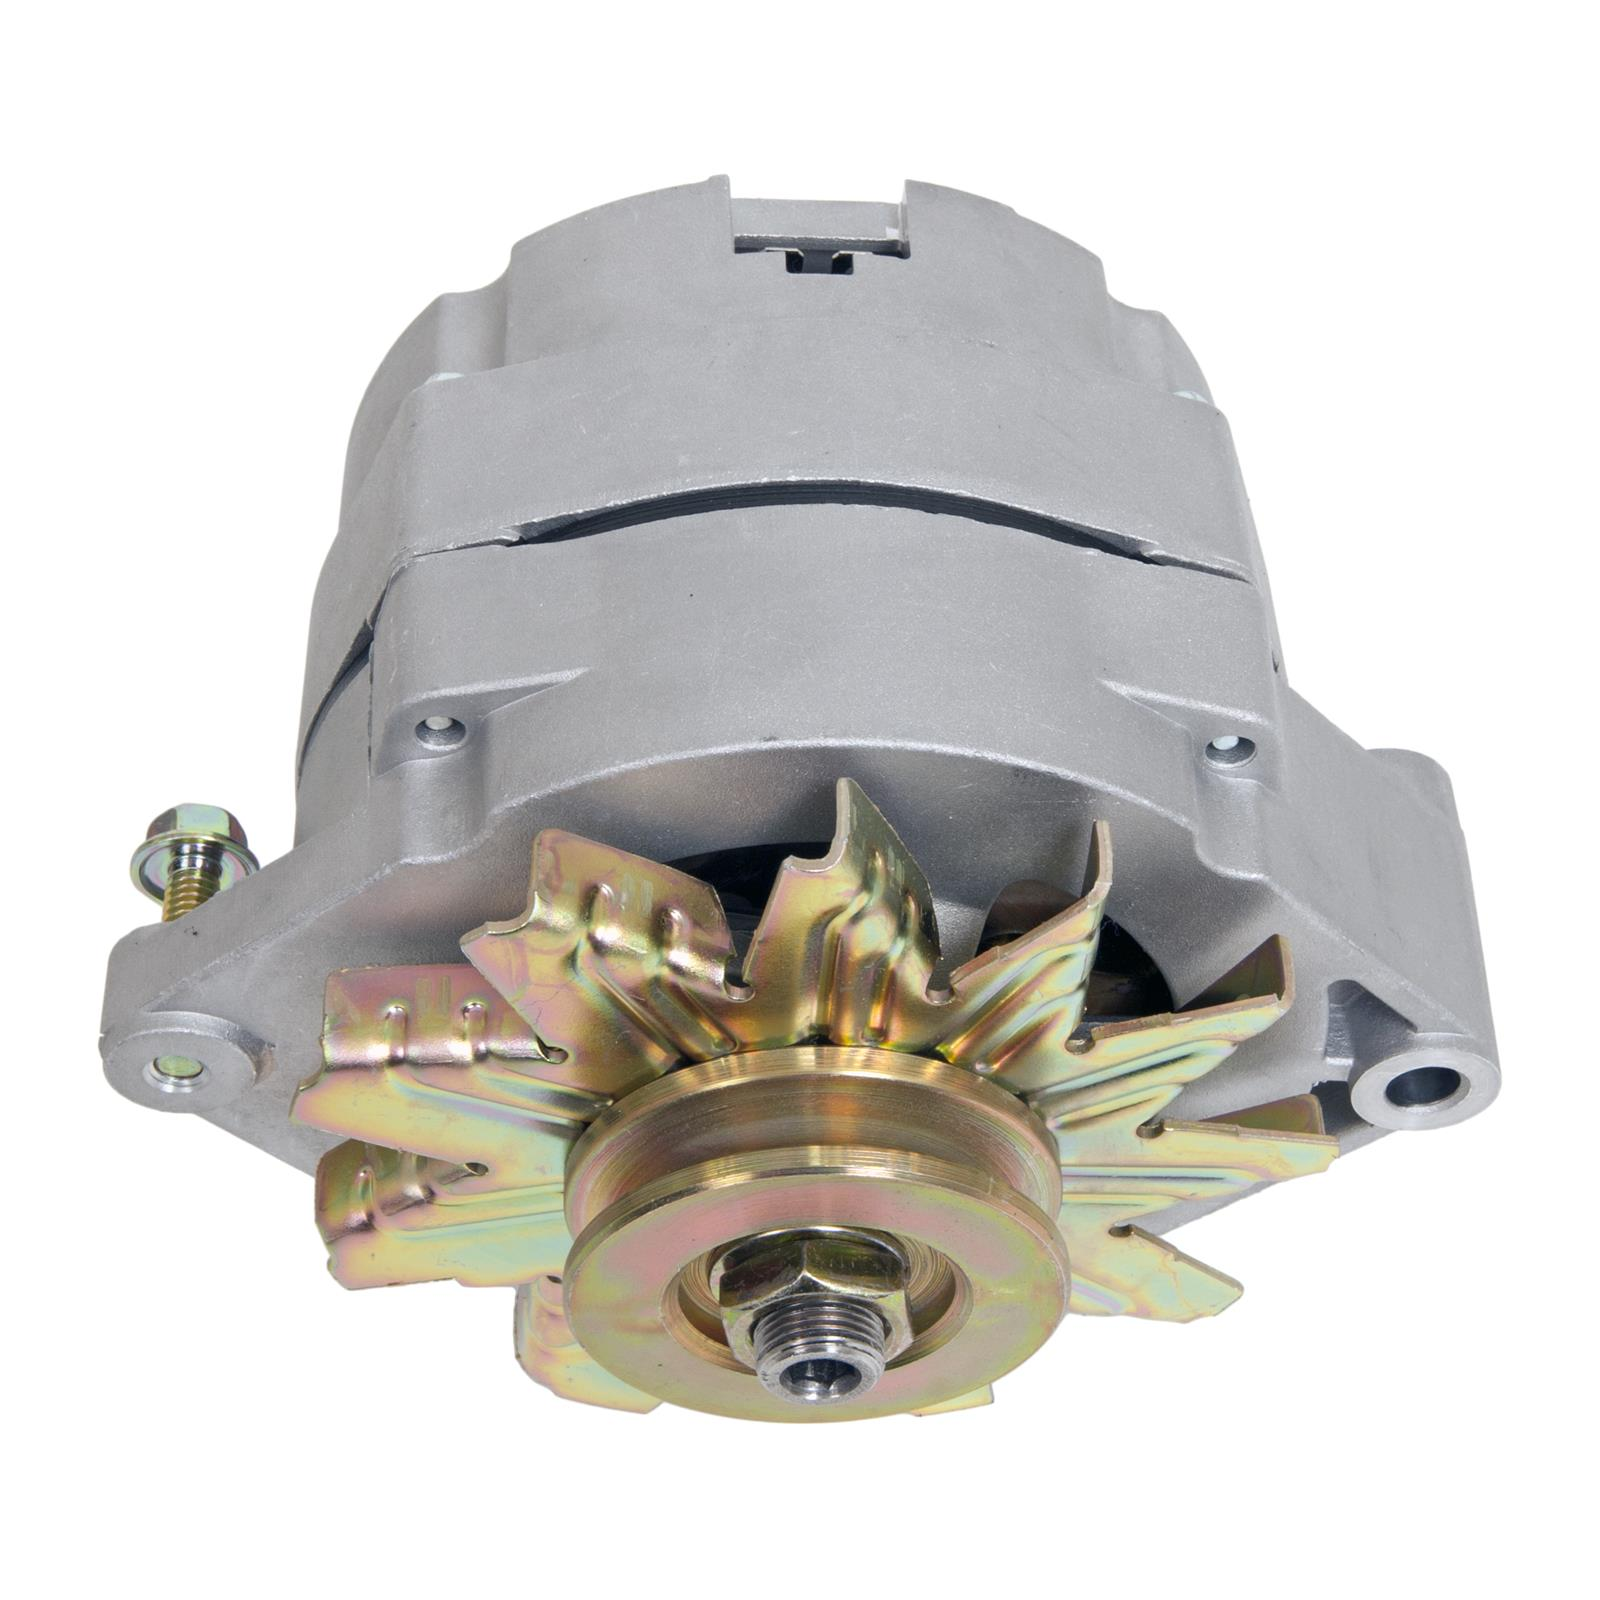 hight resolution of jeep cj7 new tech ho alternators n7294 9ho free shipping on orders over 99 at summit racing